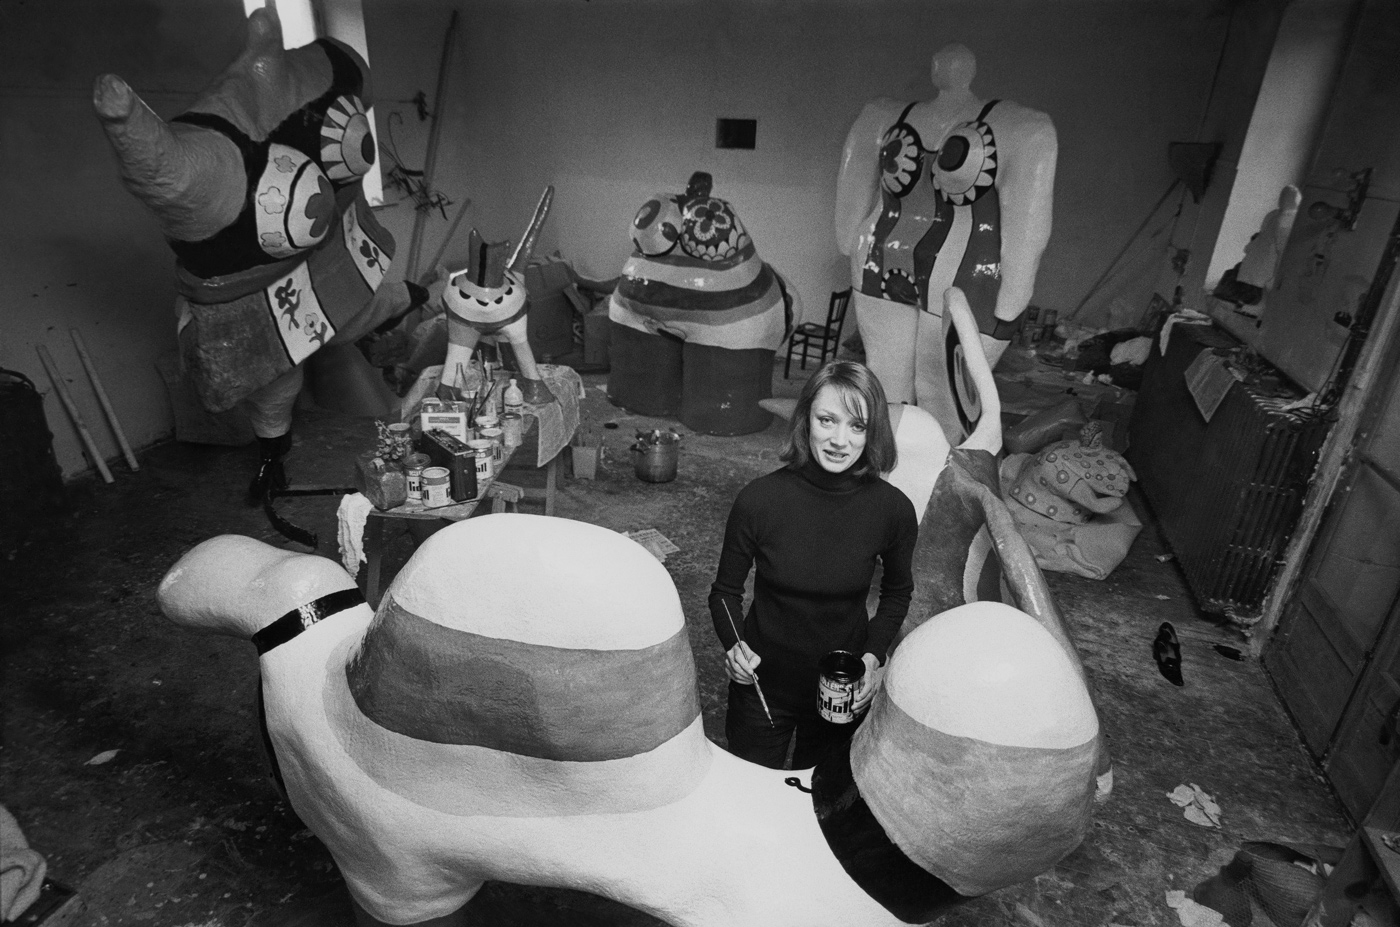 Niki de Saint Phalle at work on Nanas in her studio on the outskirts of Paris, in 1971